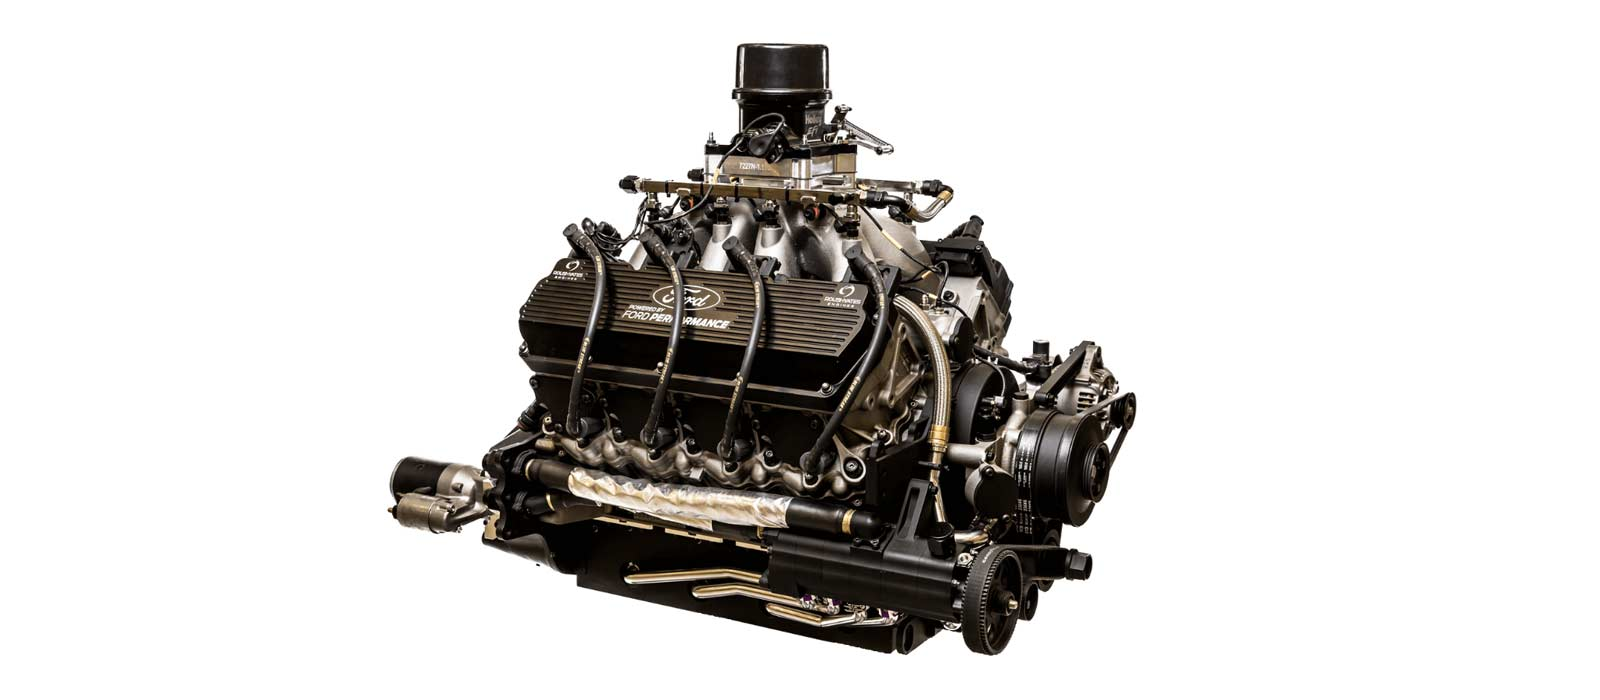 An image of a FR9 NASCAR Engine from Roush Yates Engines